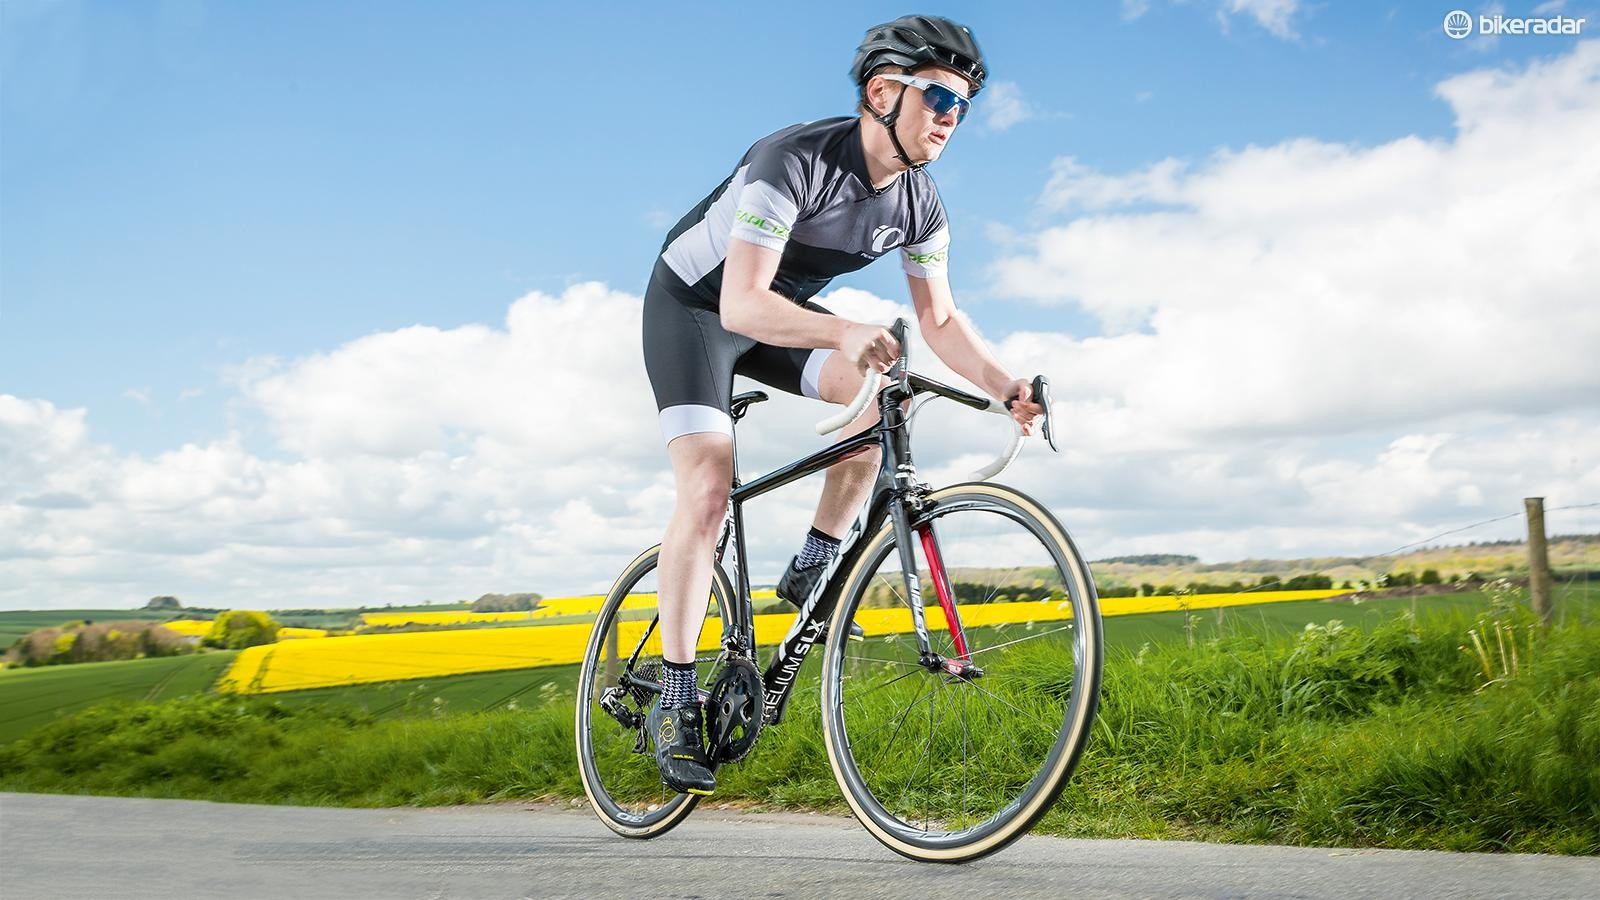 Increasing pace needs a mere thought and increase of pressure on the pedals